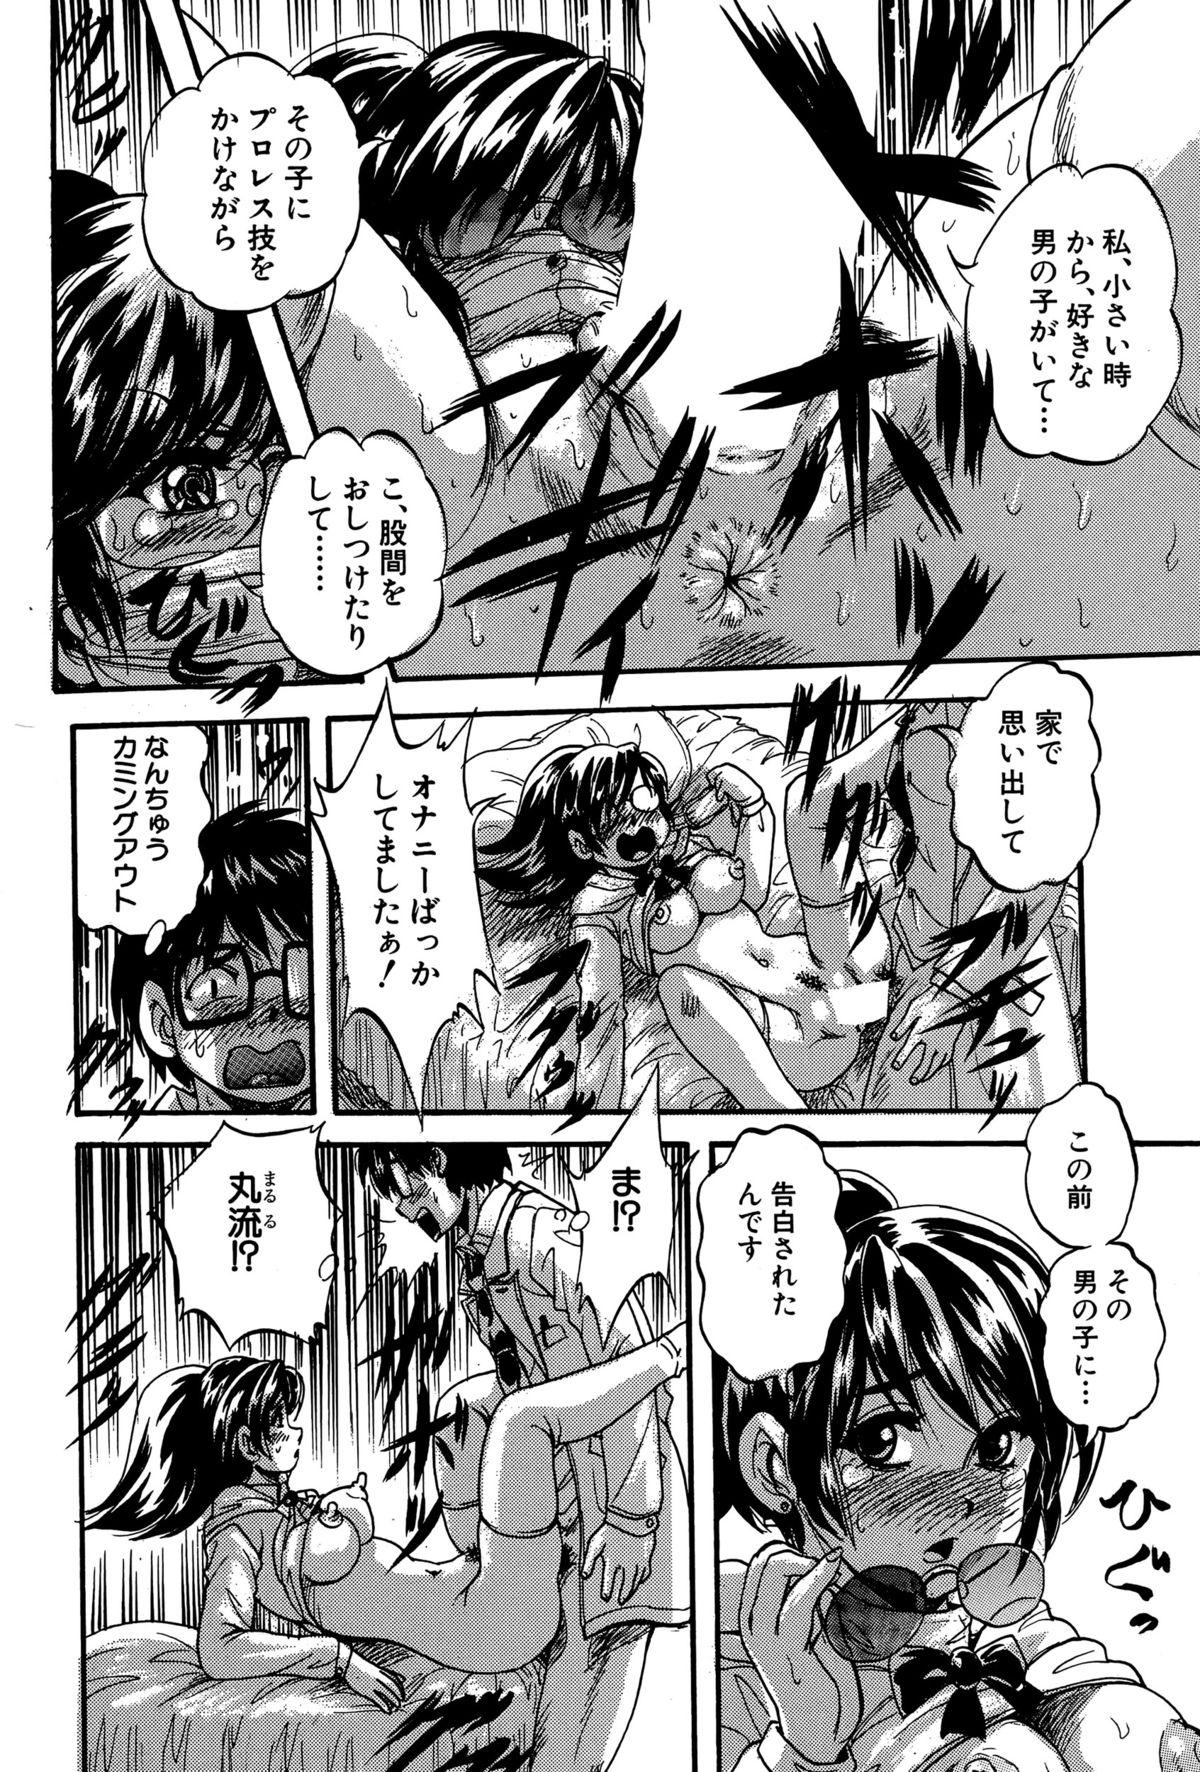 BUSTER COMIC 2015-07 349